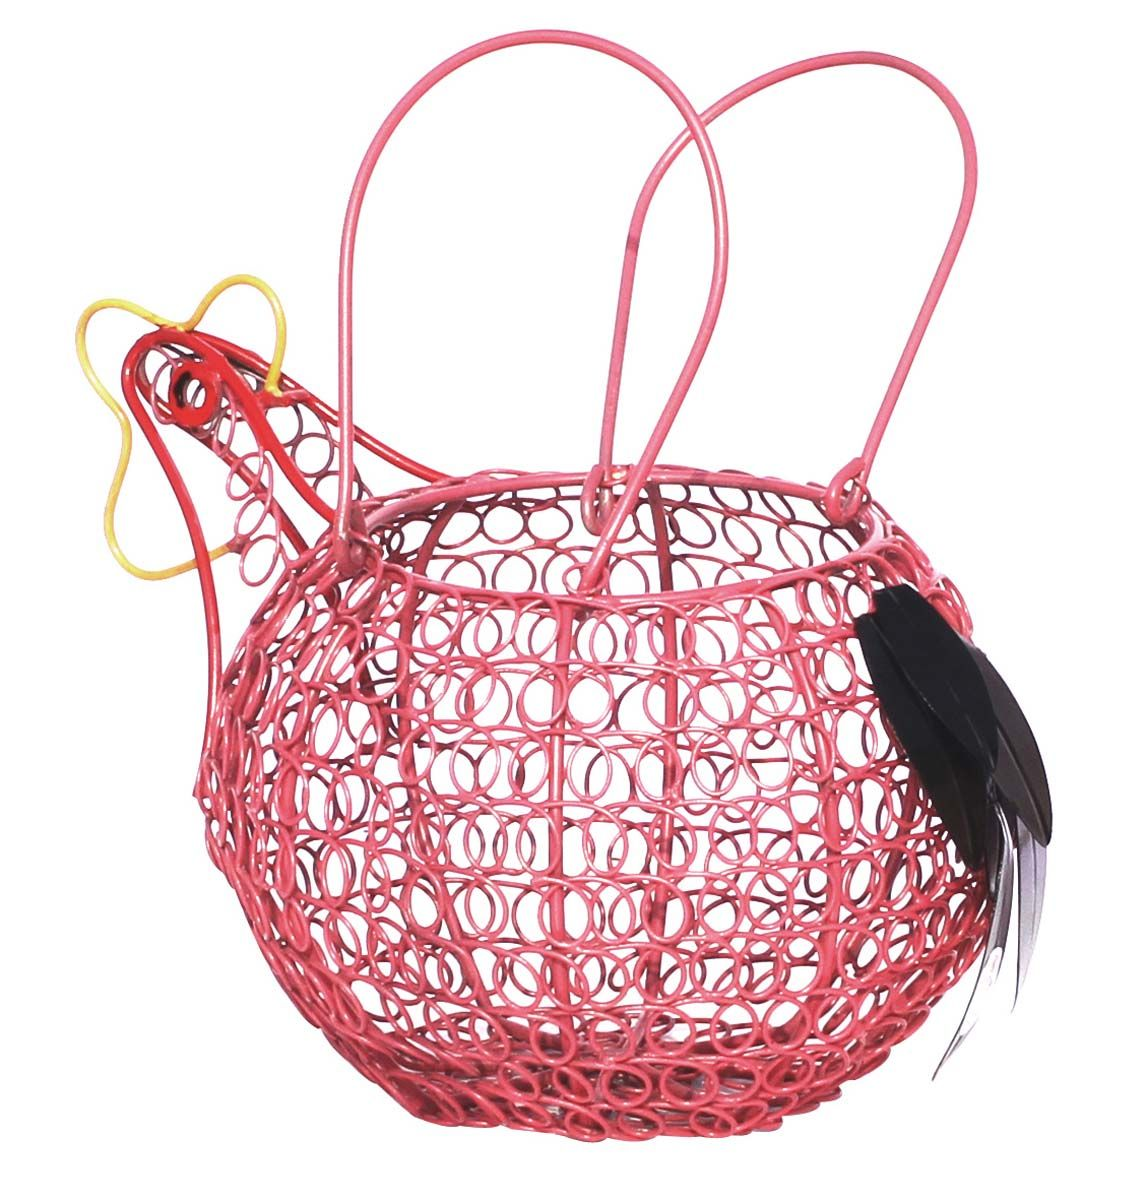 Bulks Wholesale 12 Handmade Hen Design Wire Mesh Planter In Pink Color Decorated With Feathers Planters Garden Accessories Handmade Decorations